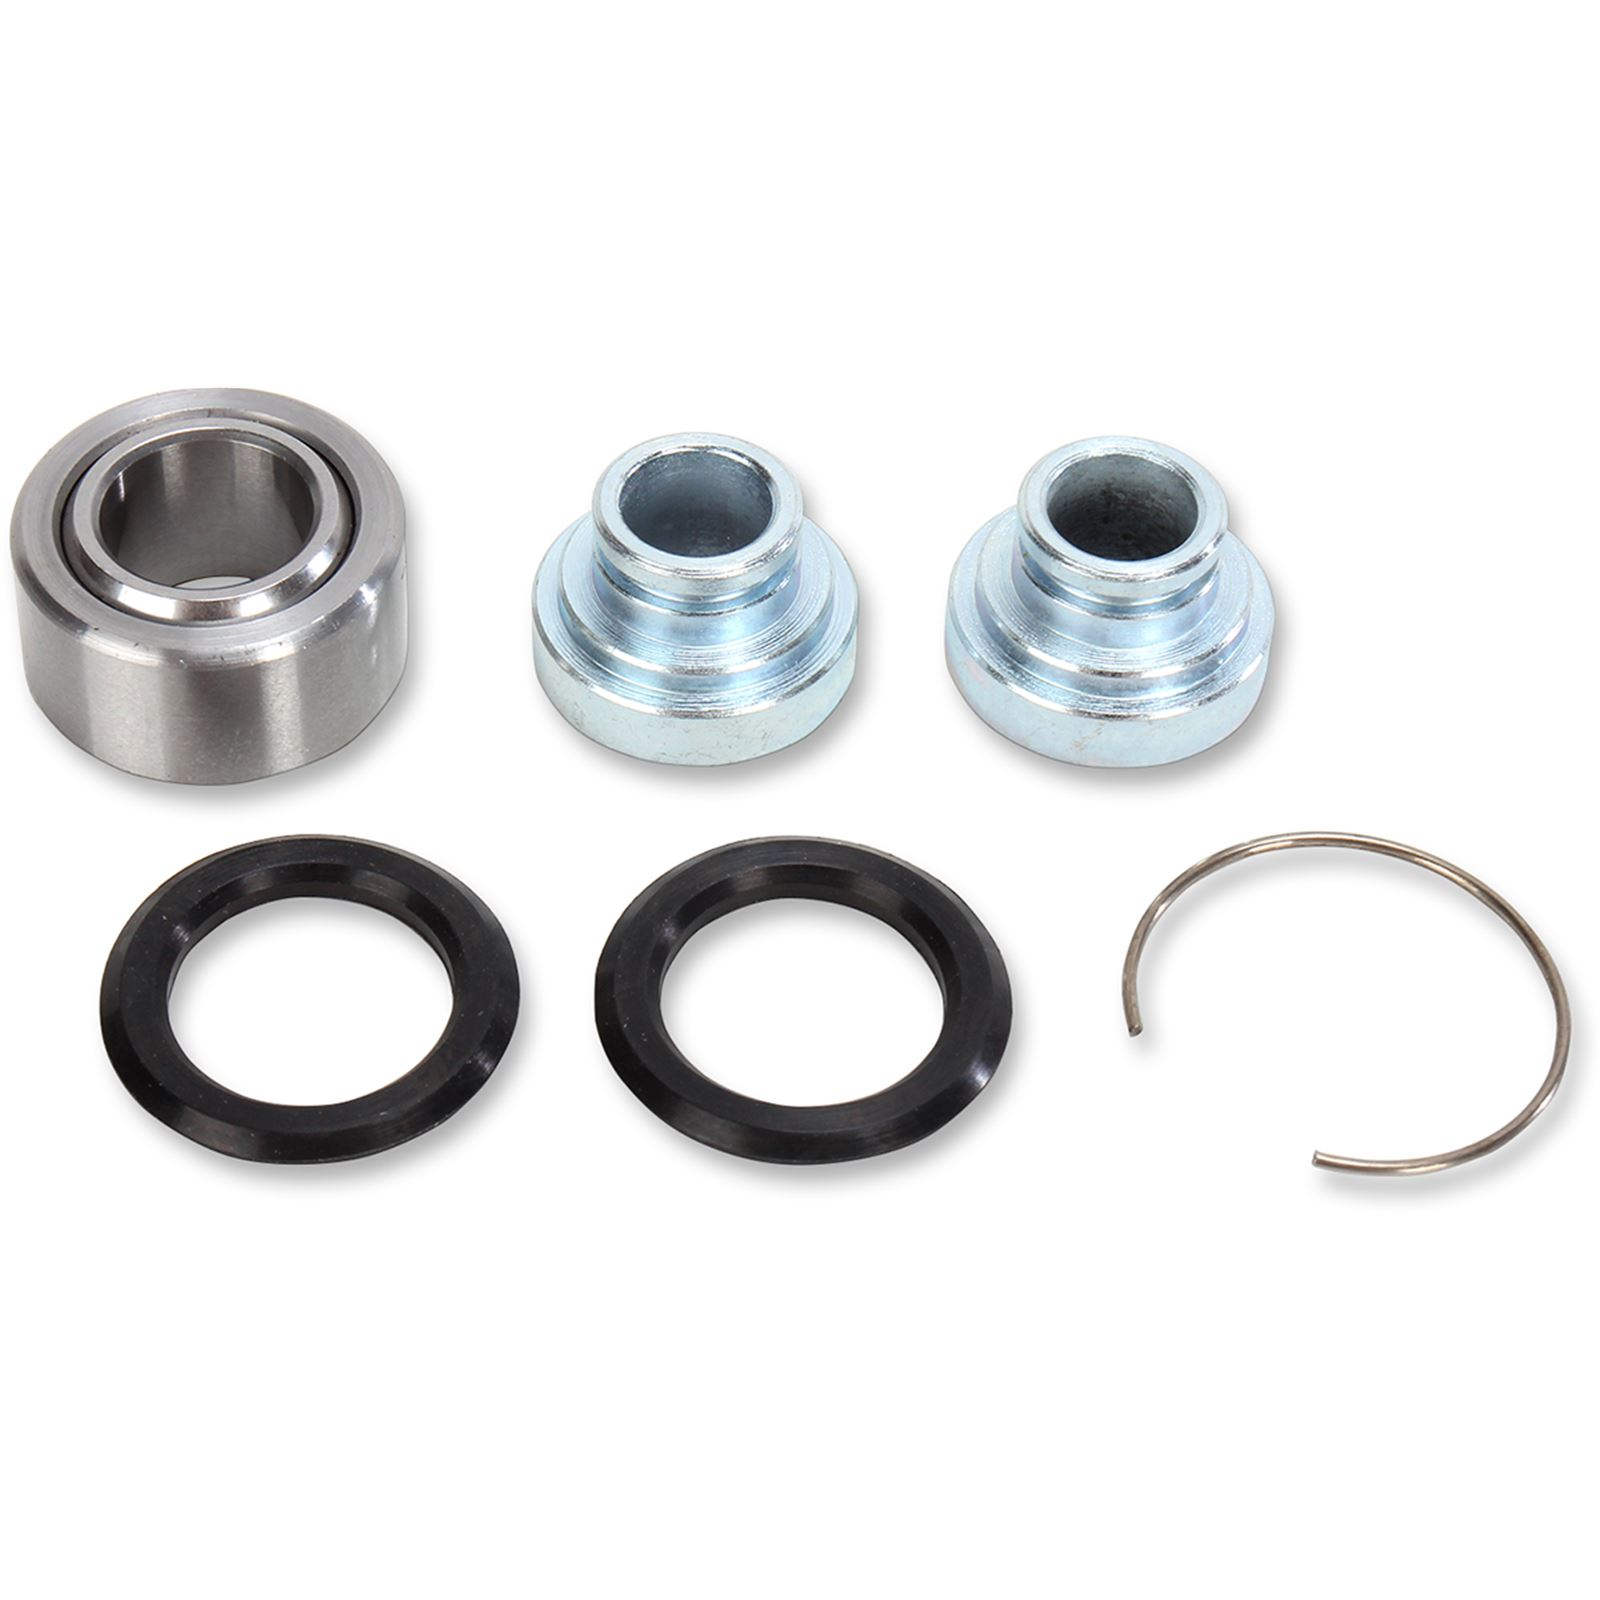 Bearing Connections Shock Bearing Kit - Upper